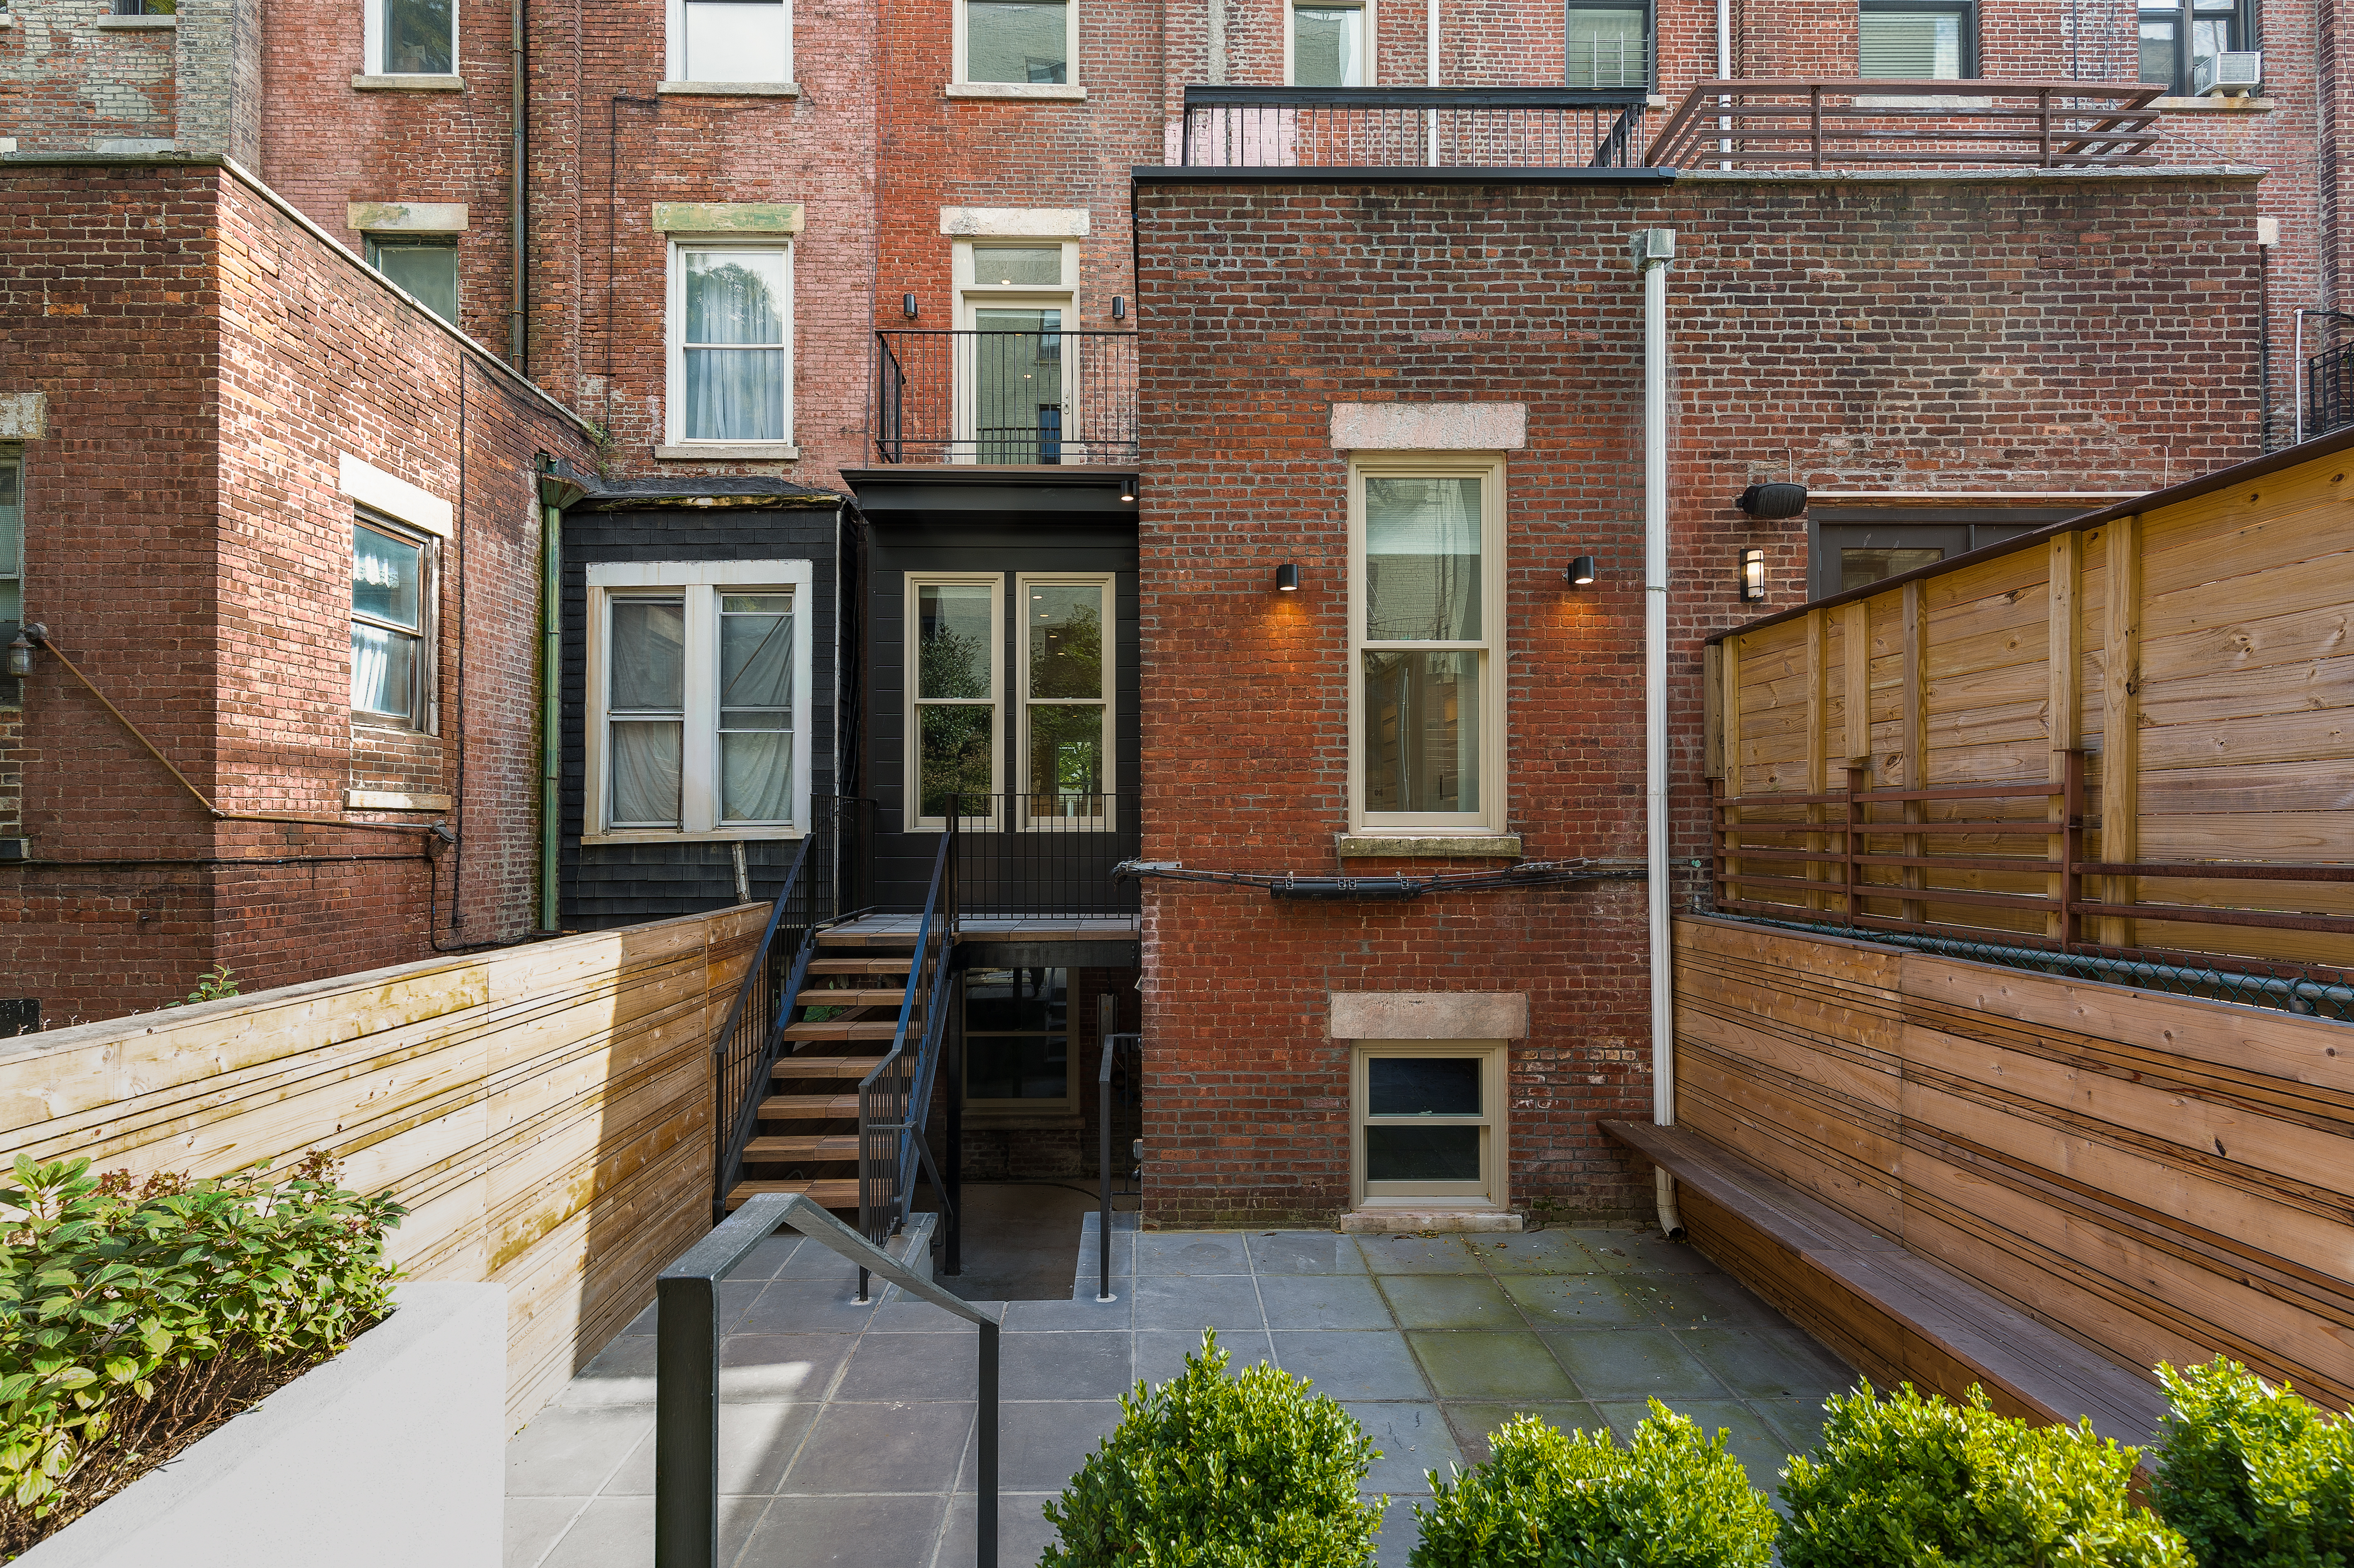 36 HAMILTON TERRACE, Select a Category